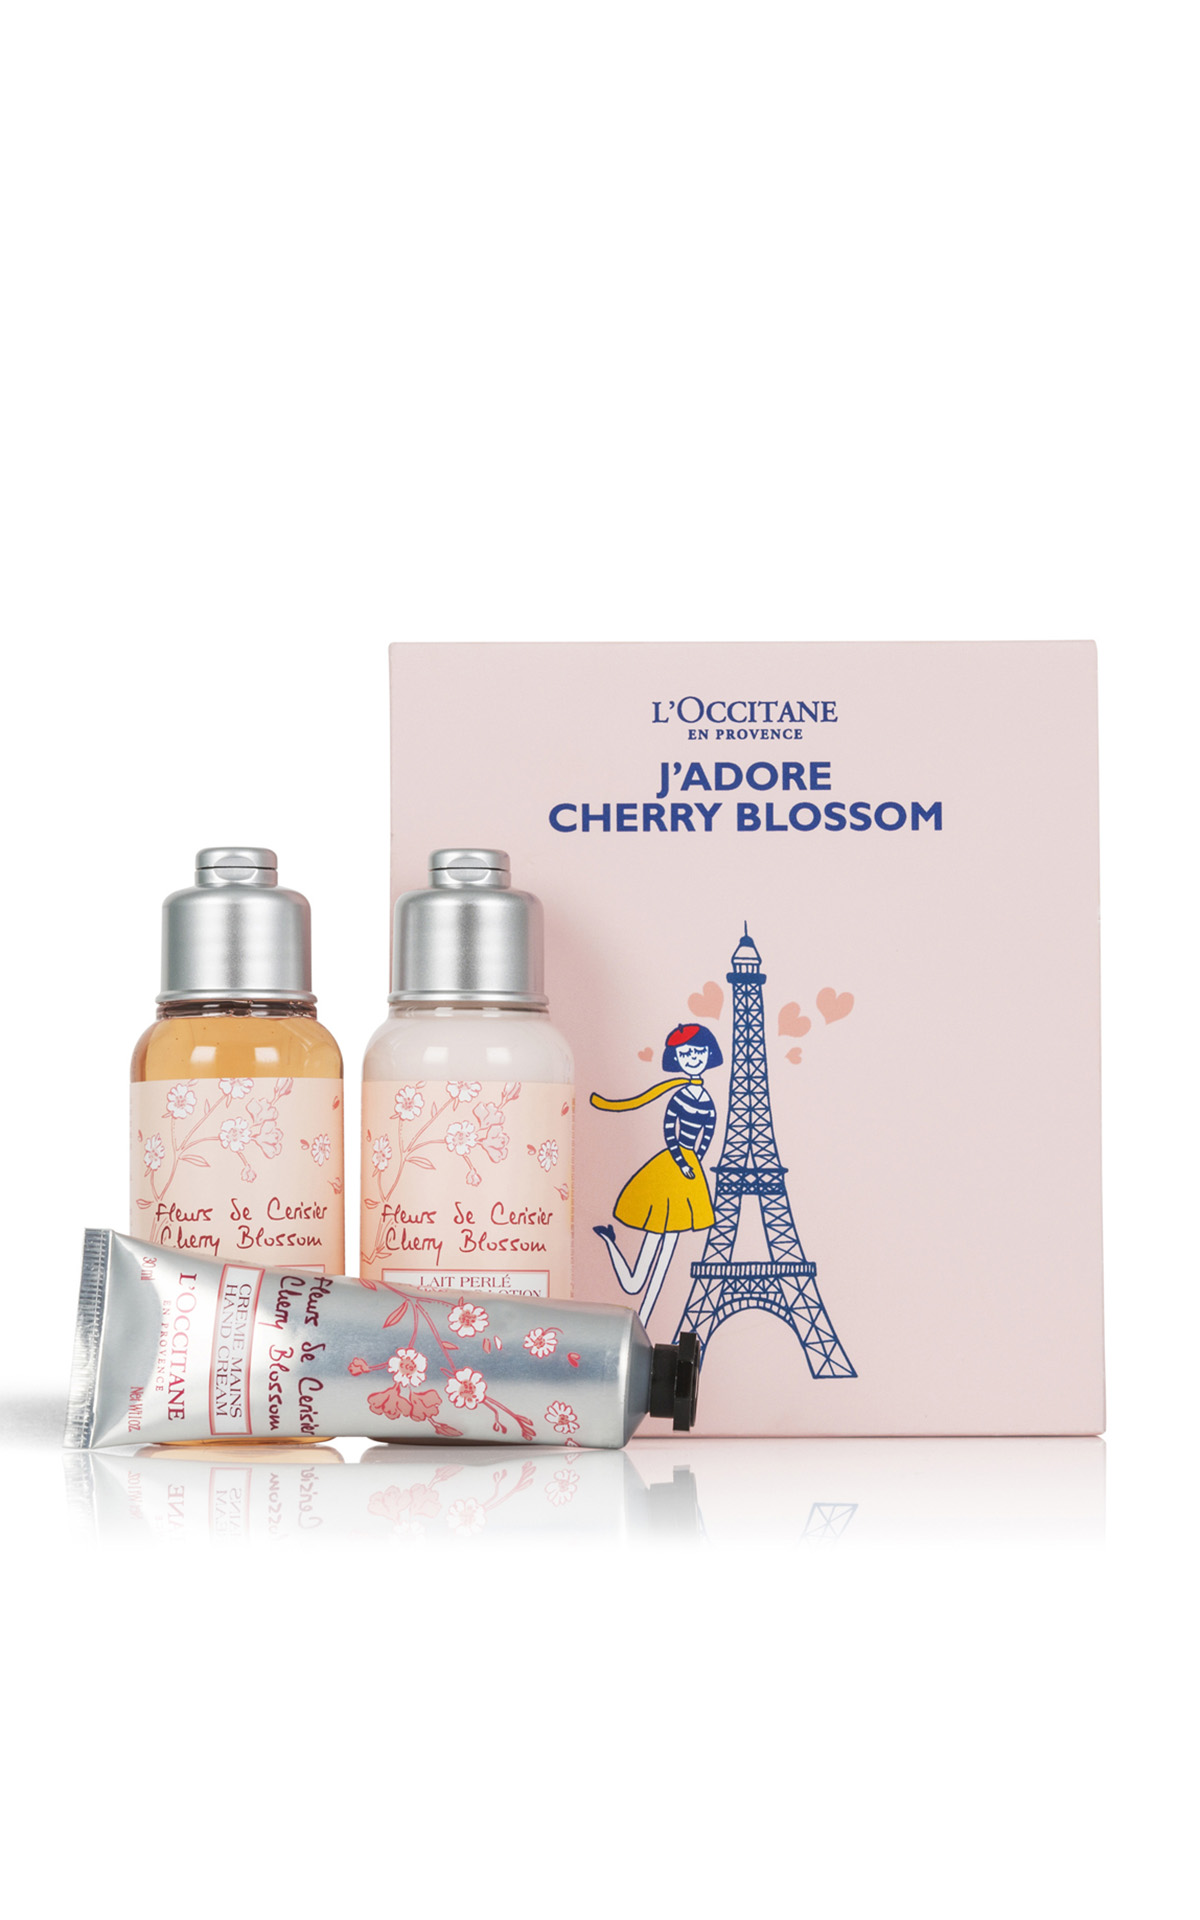 L'Occitane Cherry blossom love trio from Bicester Village